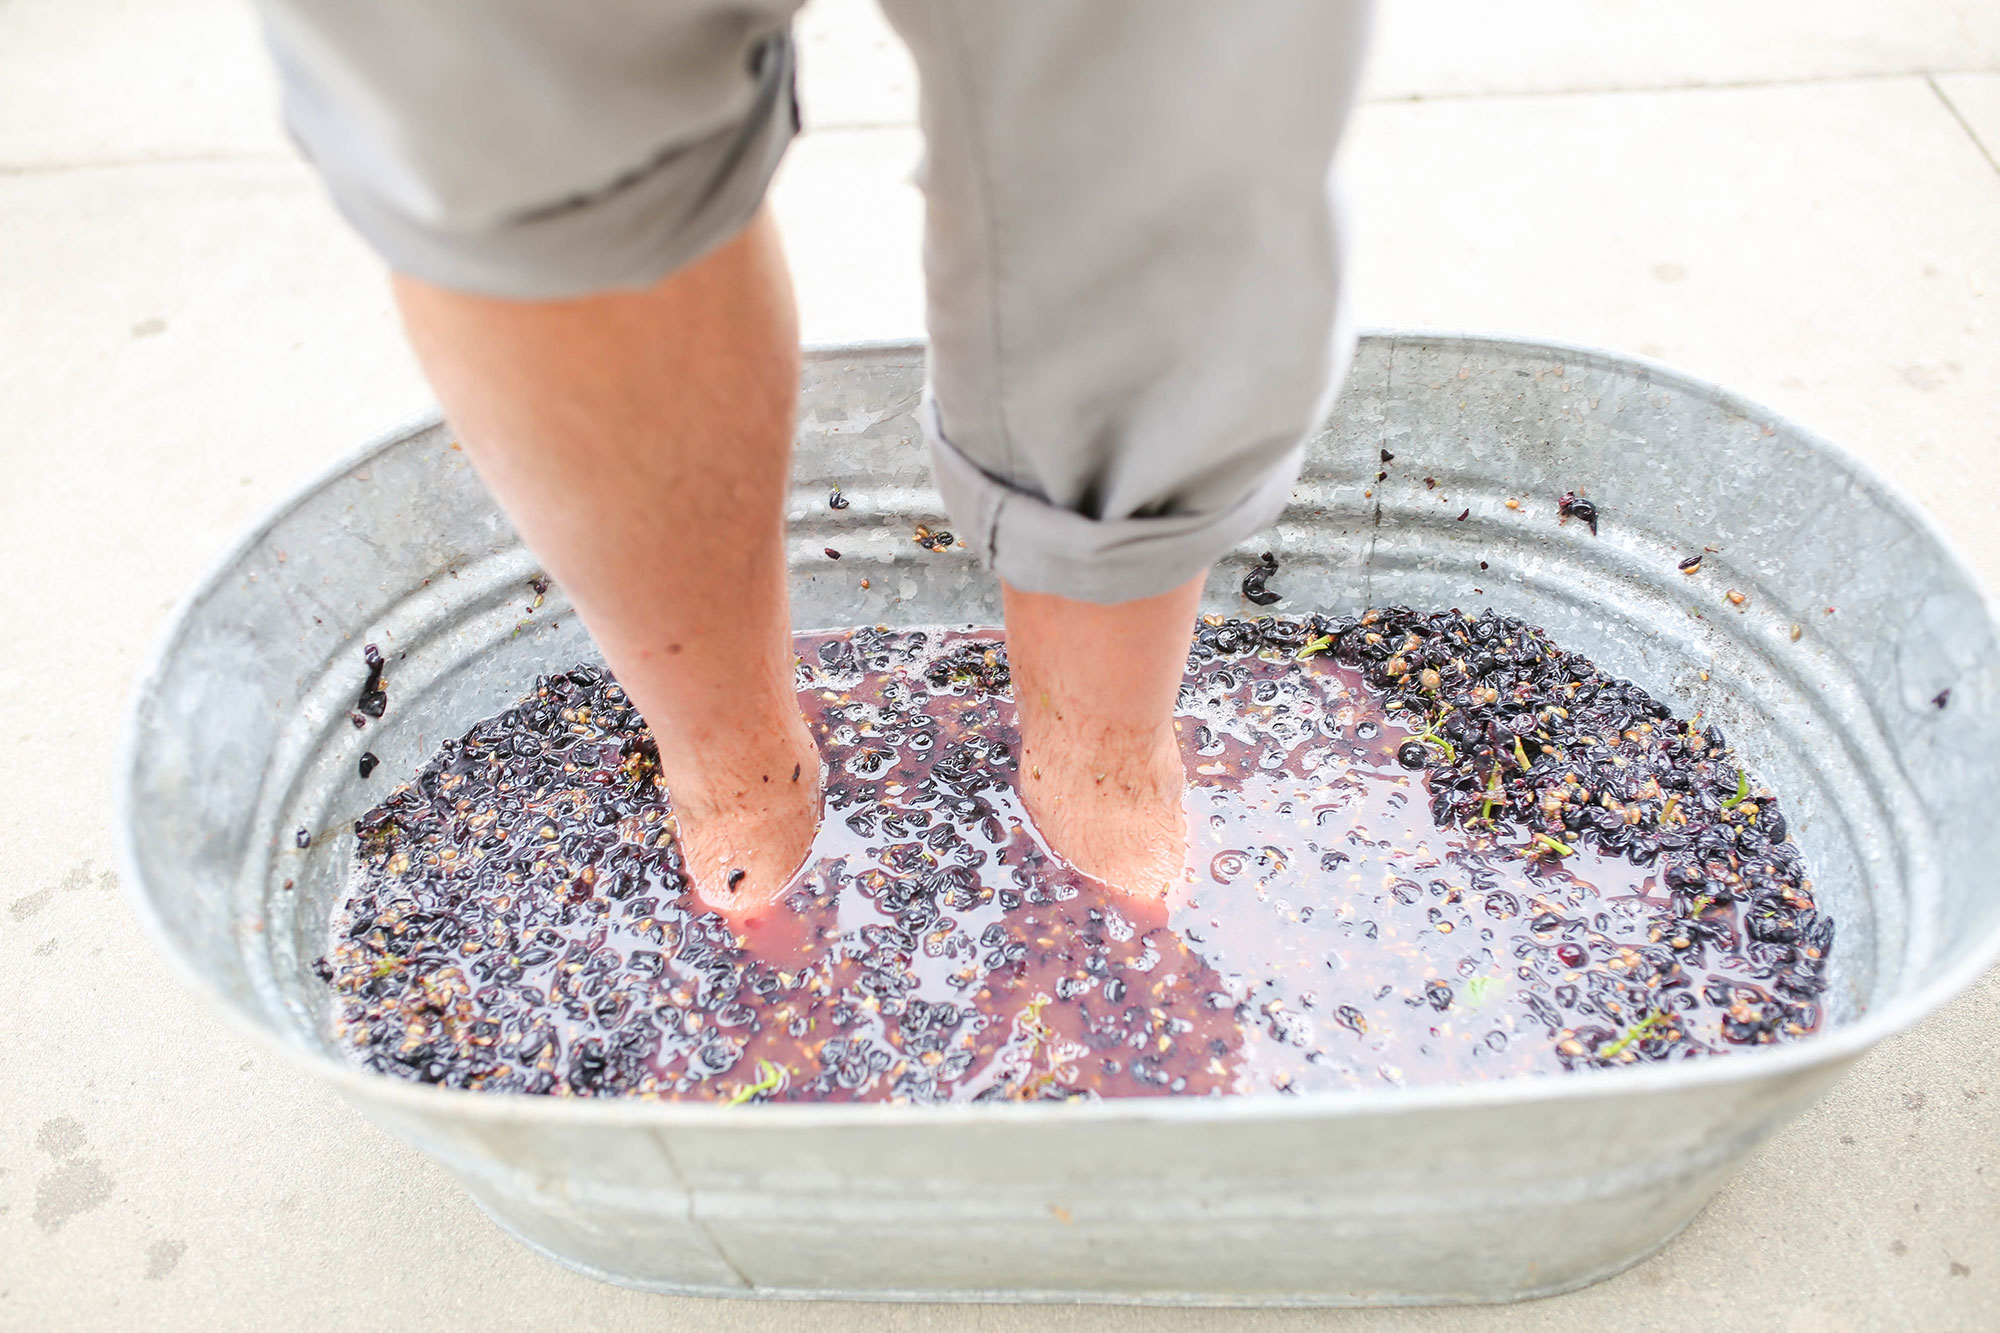 grape-stomp.jpg